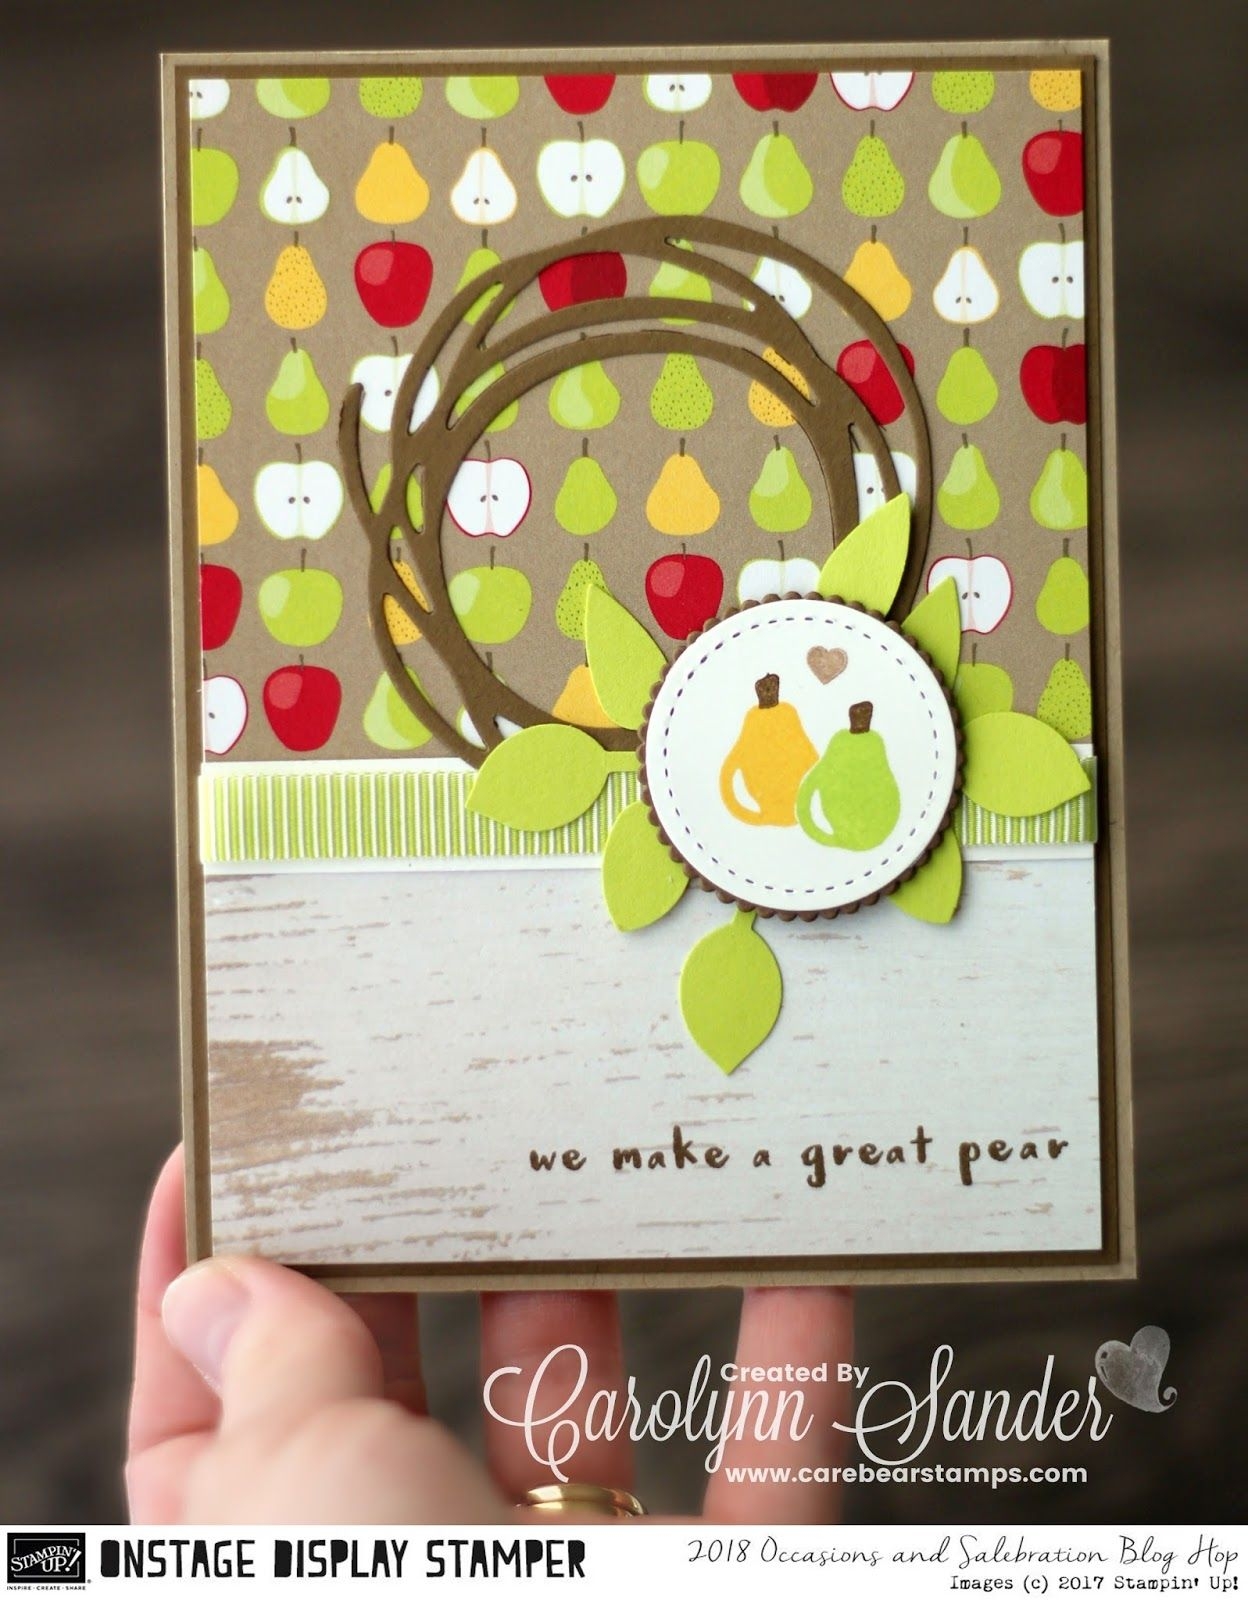 Stampin Up Demonstrator From Calgary Alberta Canada Website For